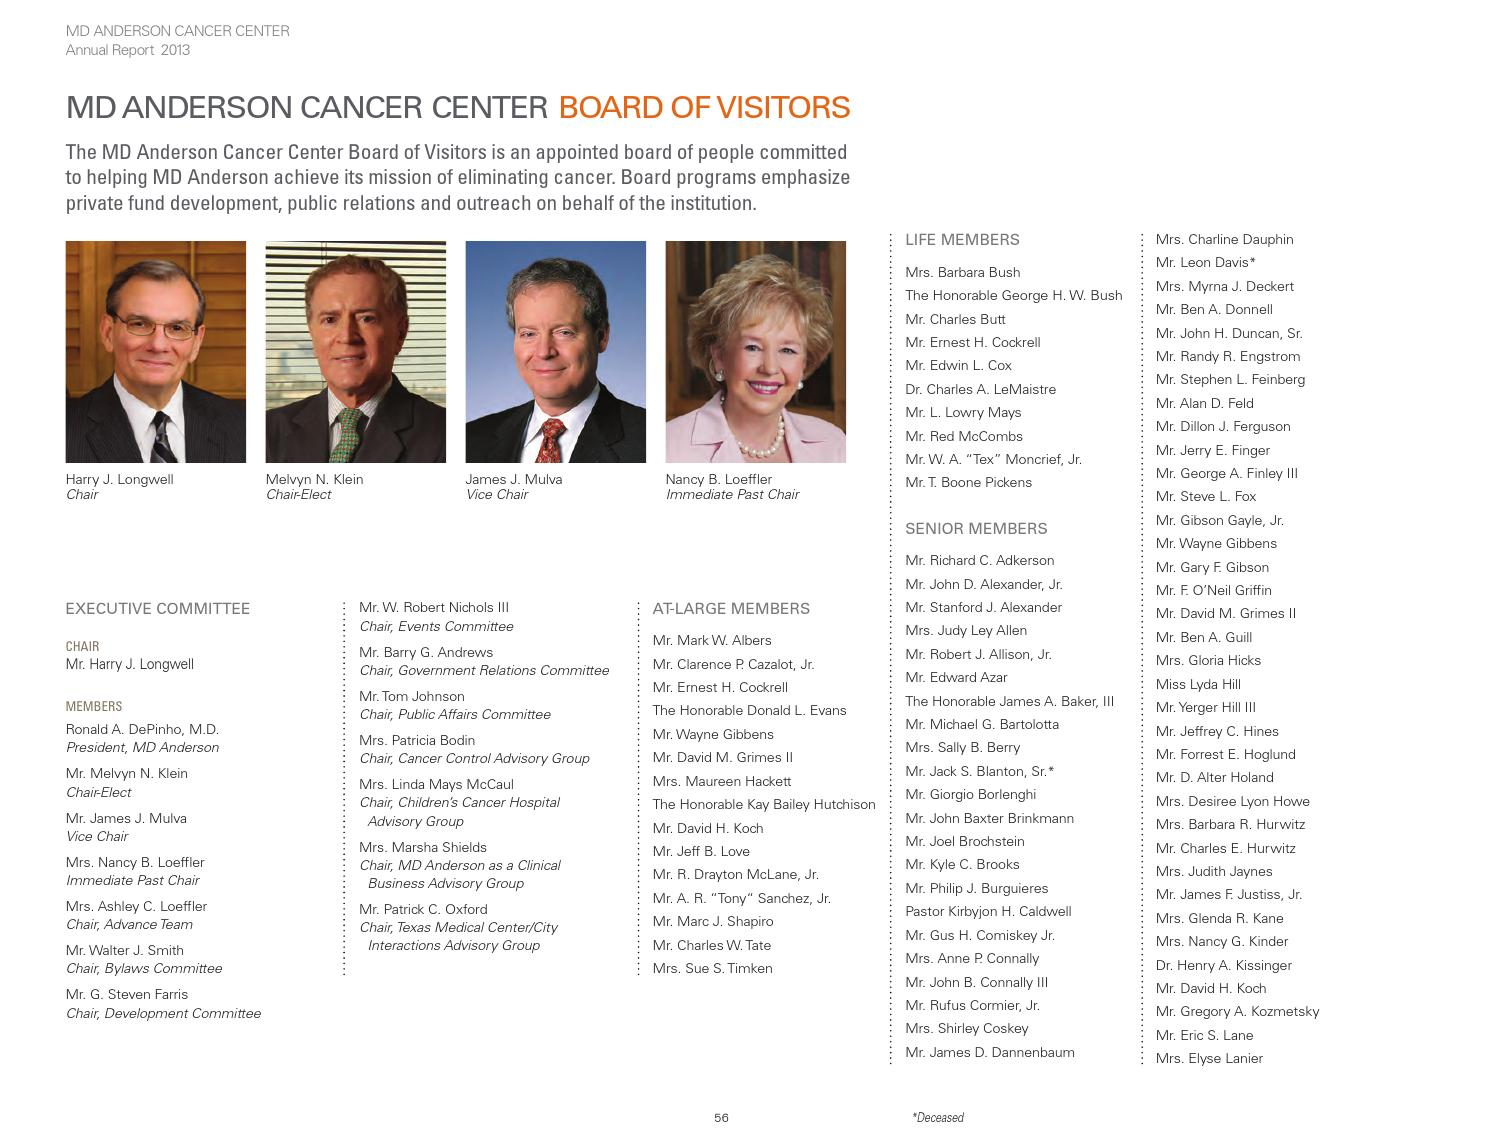 MD Anderson Annual Report 2012-2013 by MD Anderson Cancer